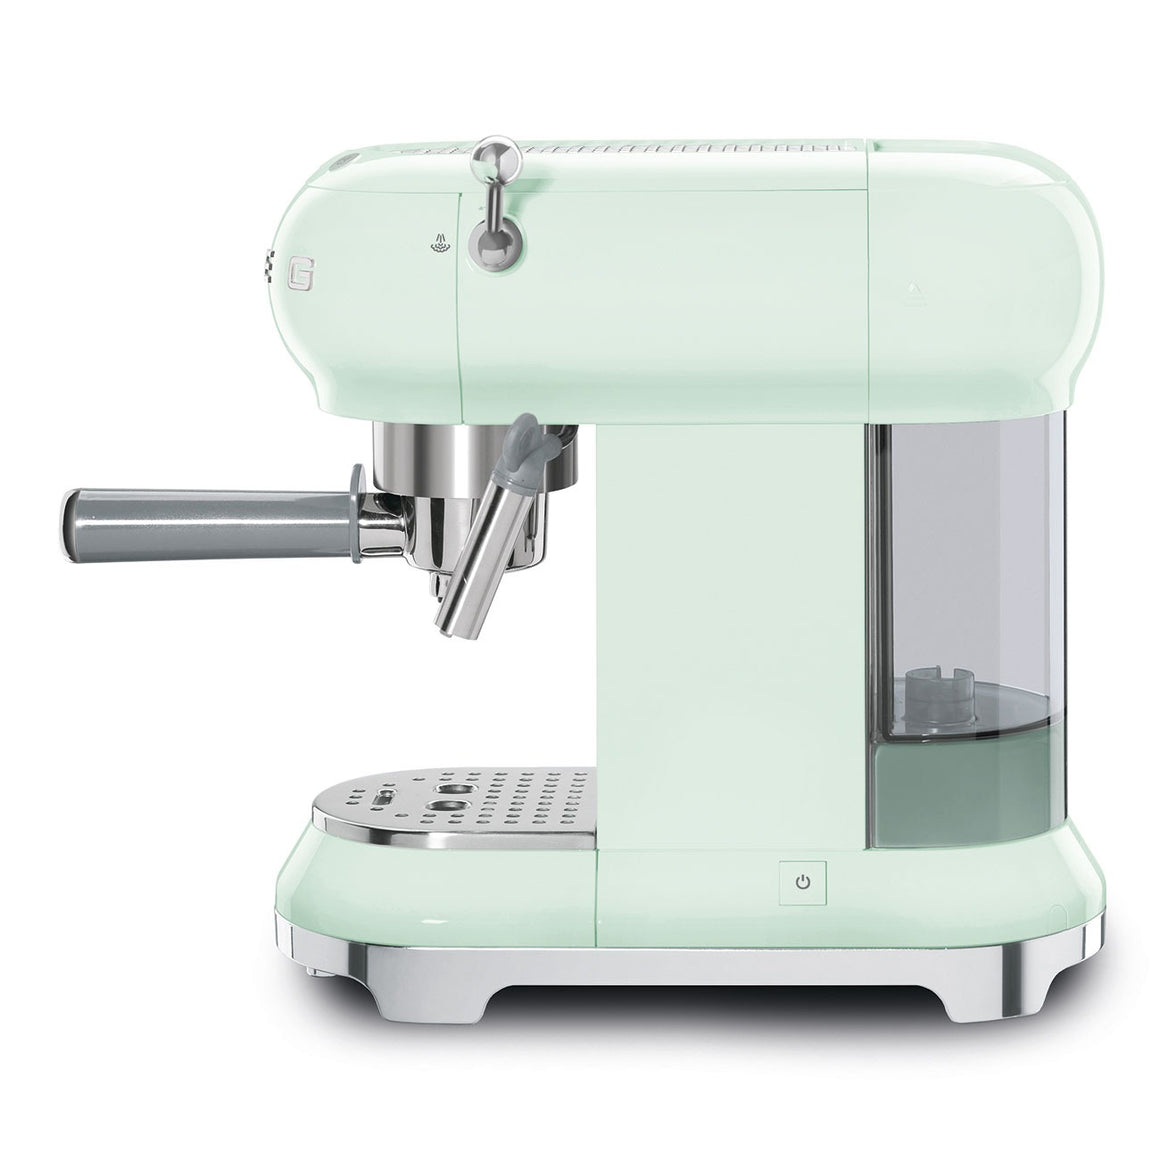 SMEG - 50's Espresso Coffee Machine, Pastel Green